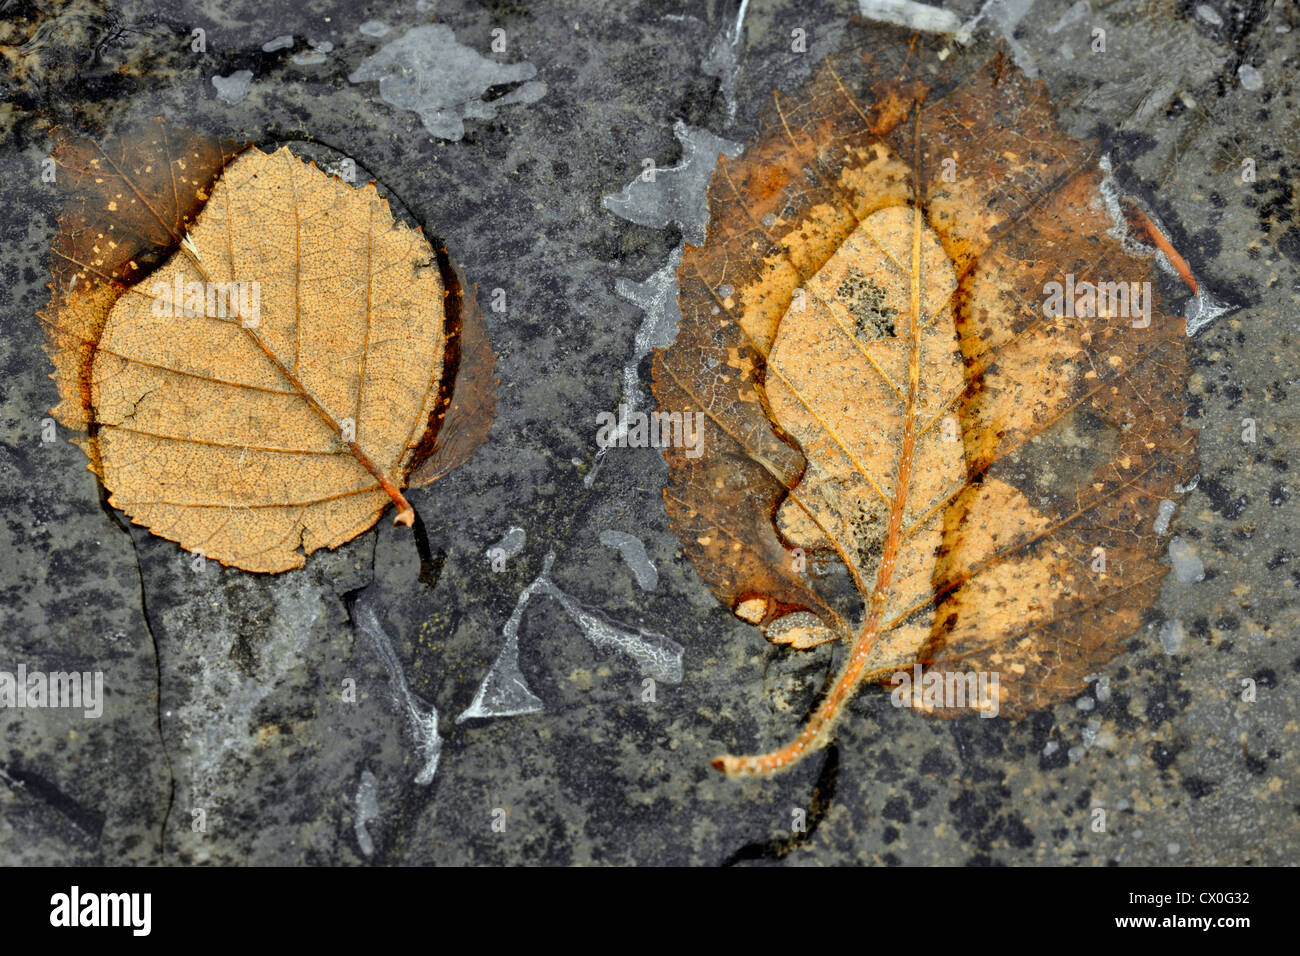 Birch leaves trapped in fresh ice on rock outcrop, Greater Sudbury, Ontario, Canada - Stock Image